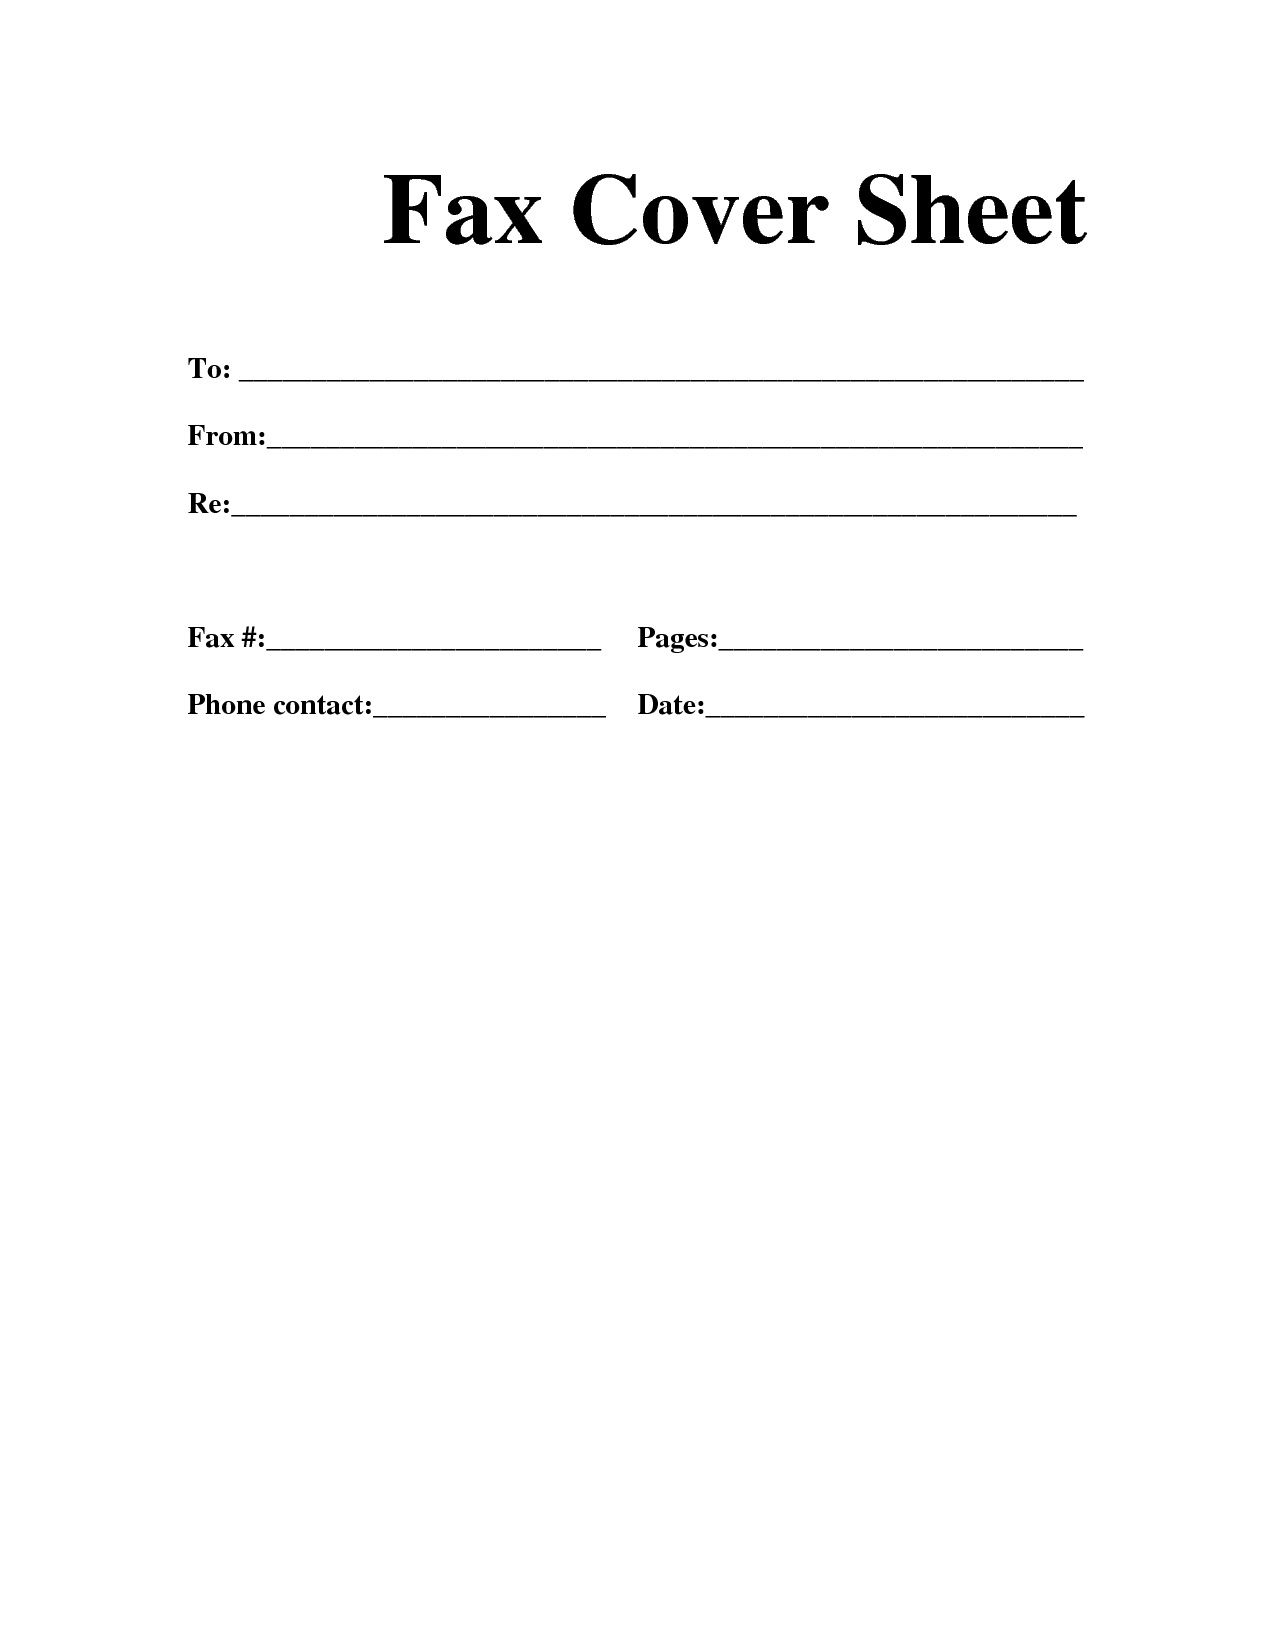 fax cover sheet resume template 808 httptopresumeinfo - Cover Letter And Resume Format